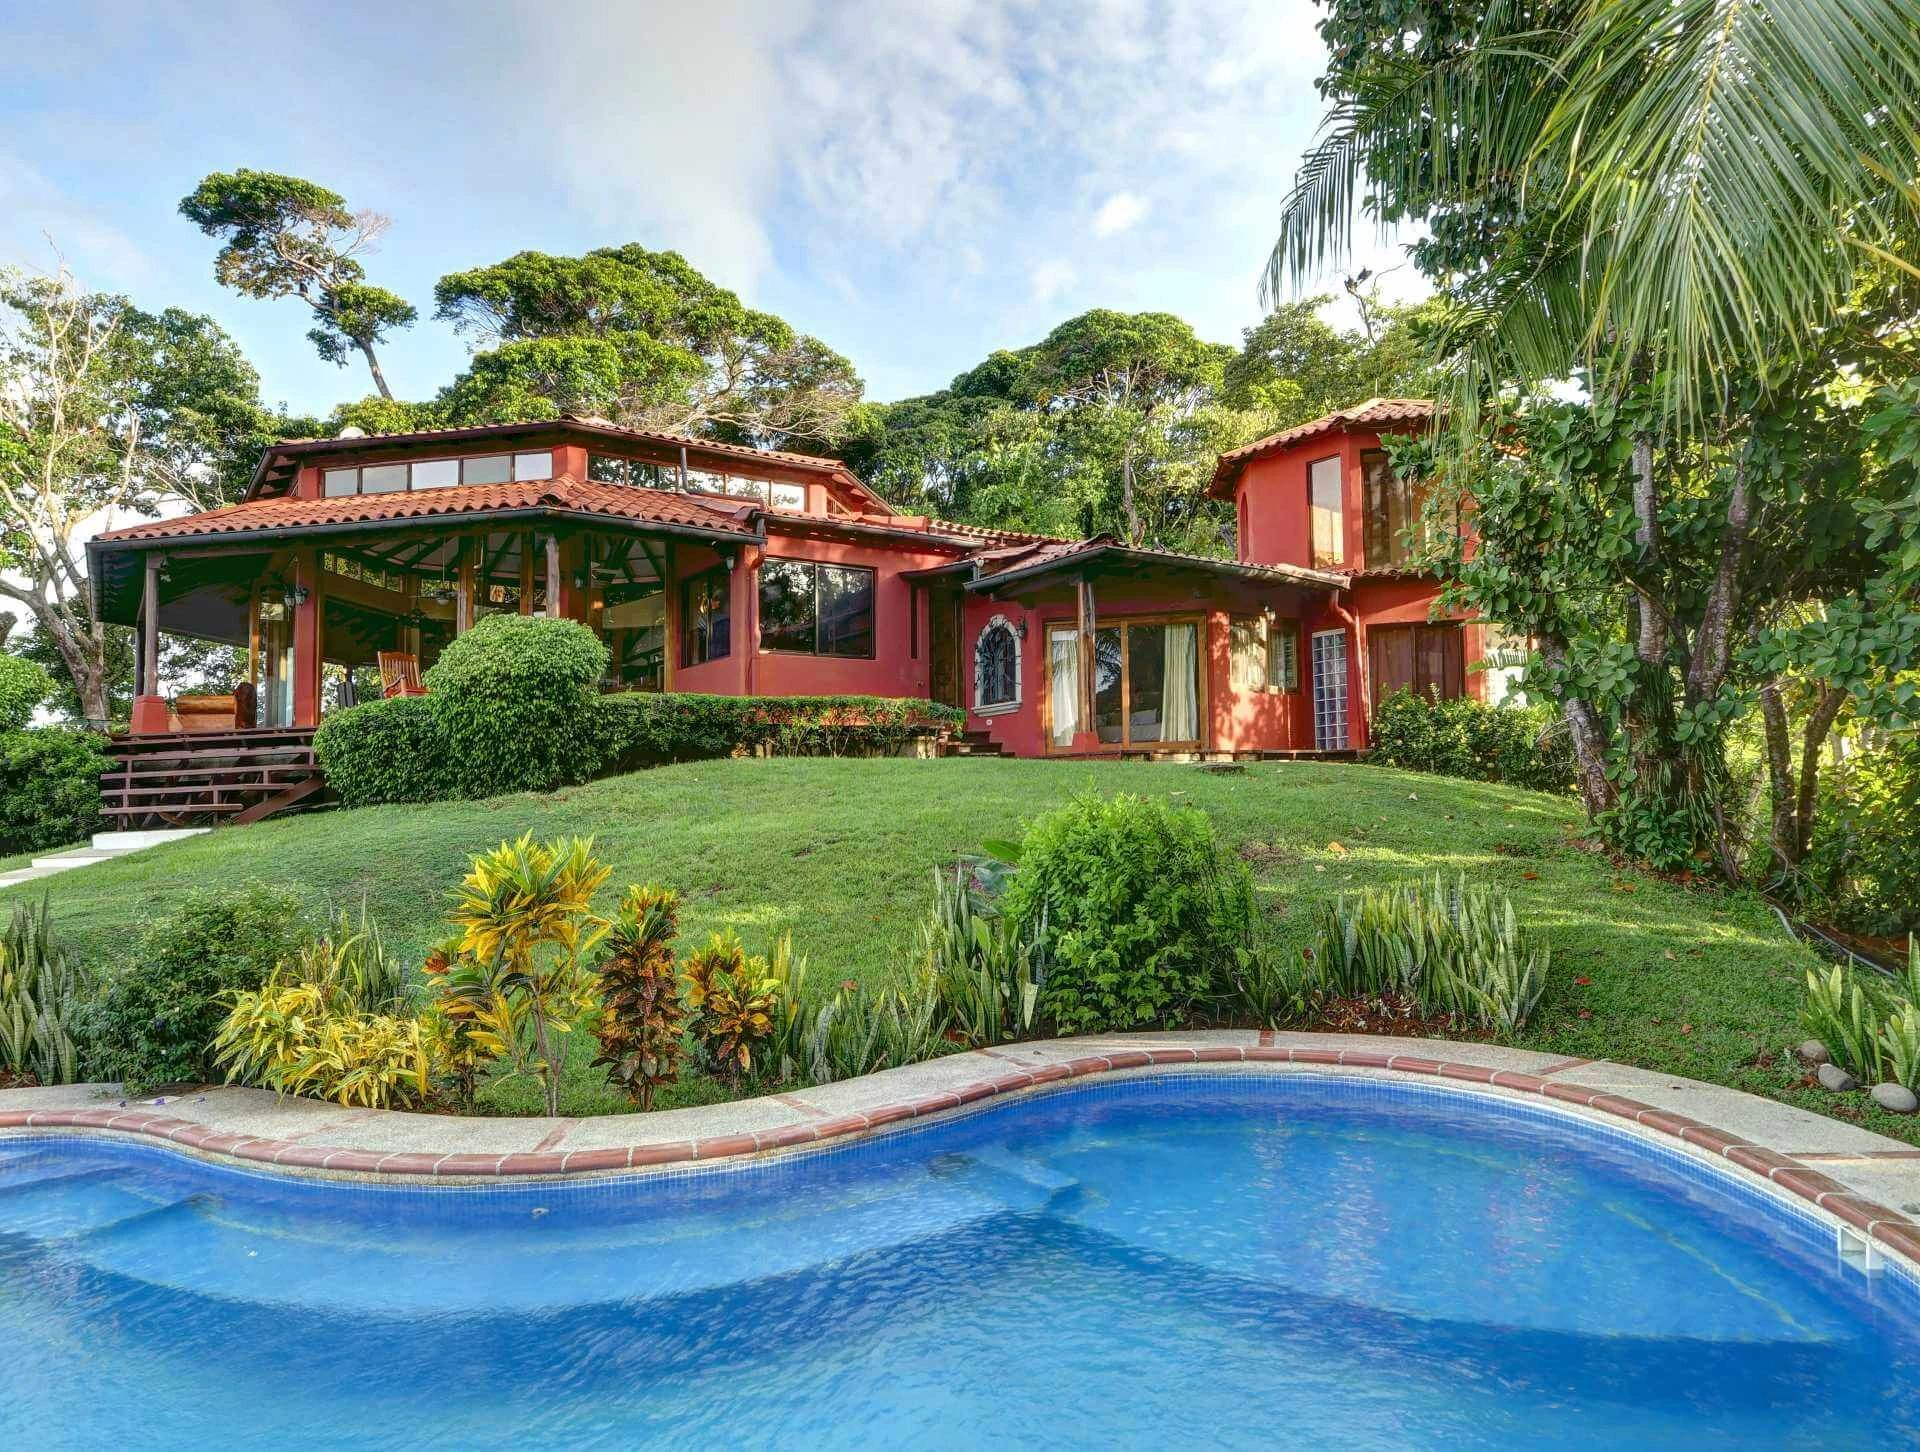 Costa Rica Vacation Rental Agent Offering Pacific Caribbean And Central Area Homes In Domincal U Costa Rica Real Estate Costa Rica Rental Costa Rica Vacation